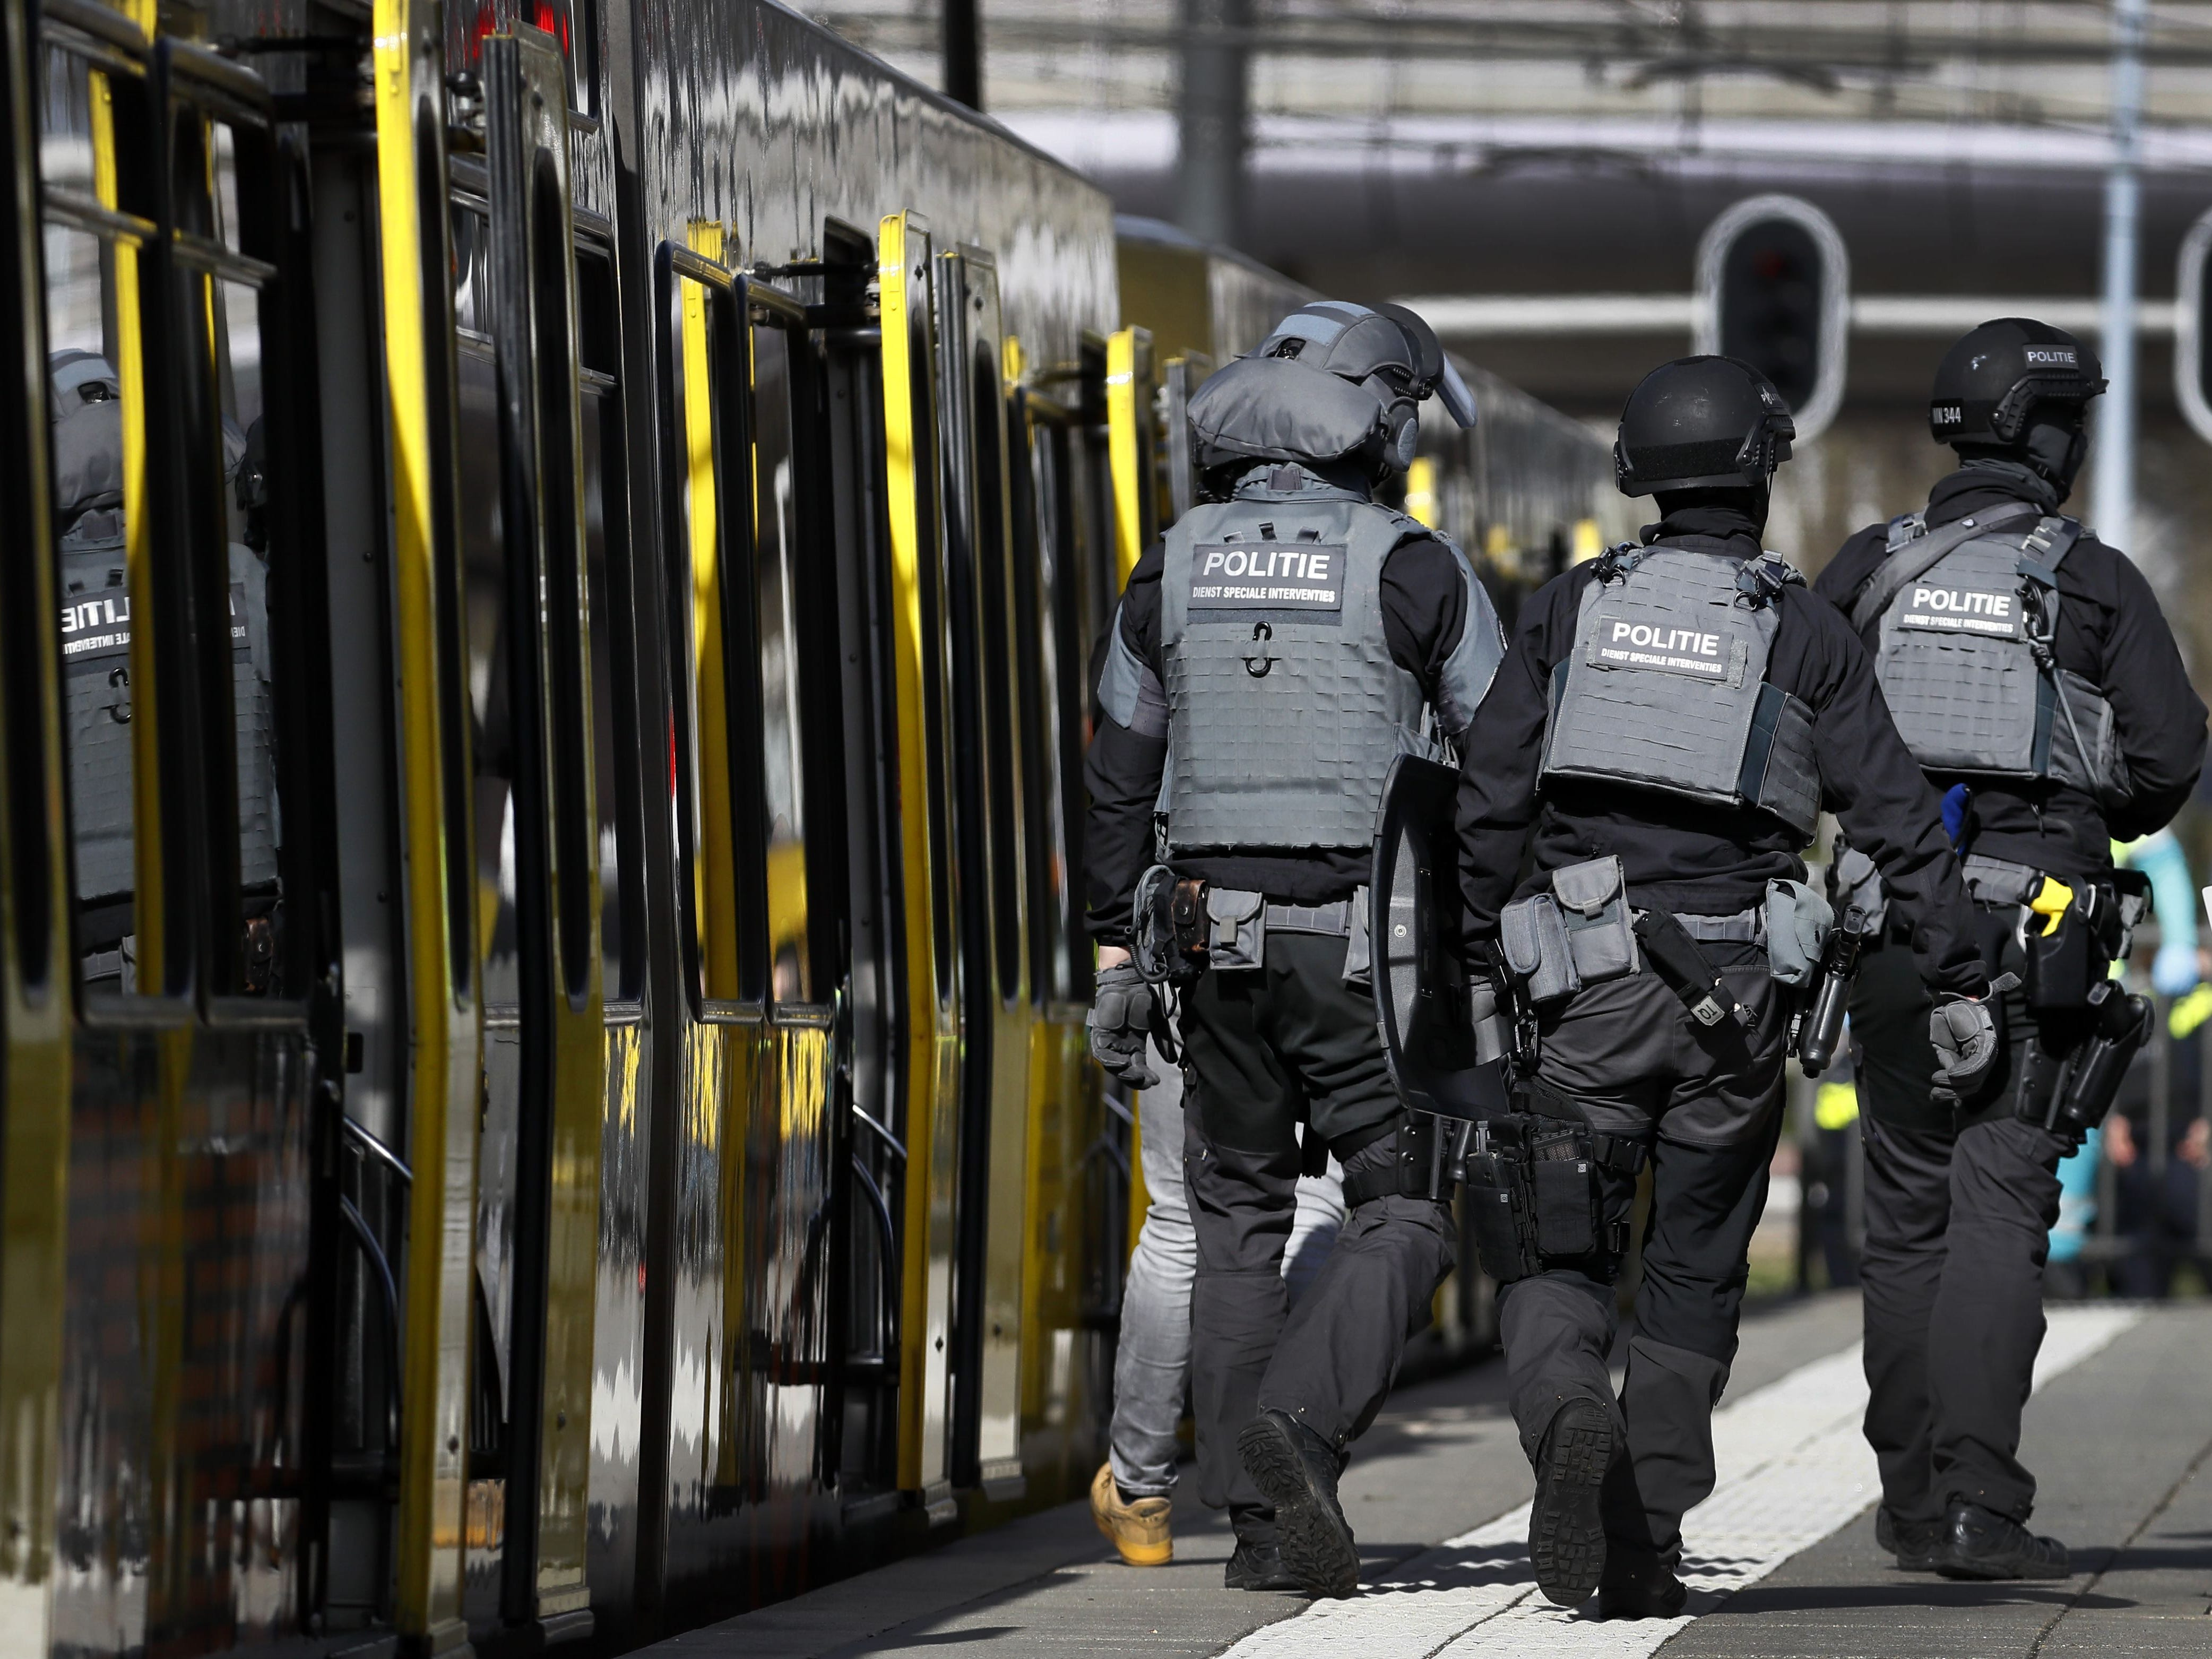 Police forces walk near a tram at the 24 Oktoberplace in Utrecht, on March 18, 2019 where a shooting took place.